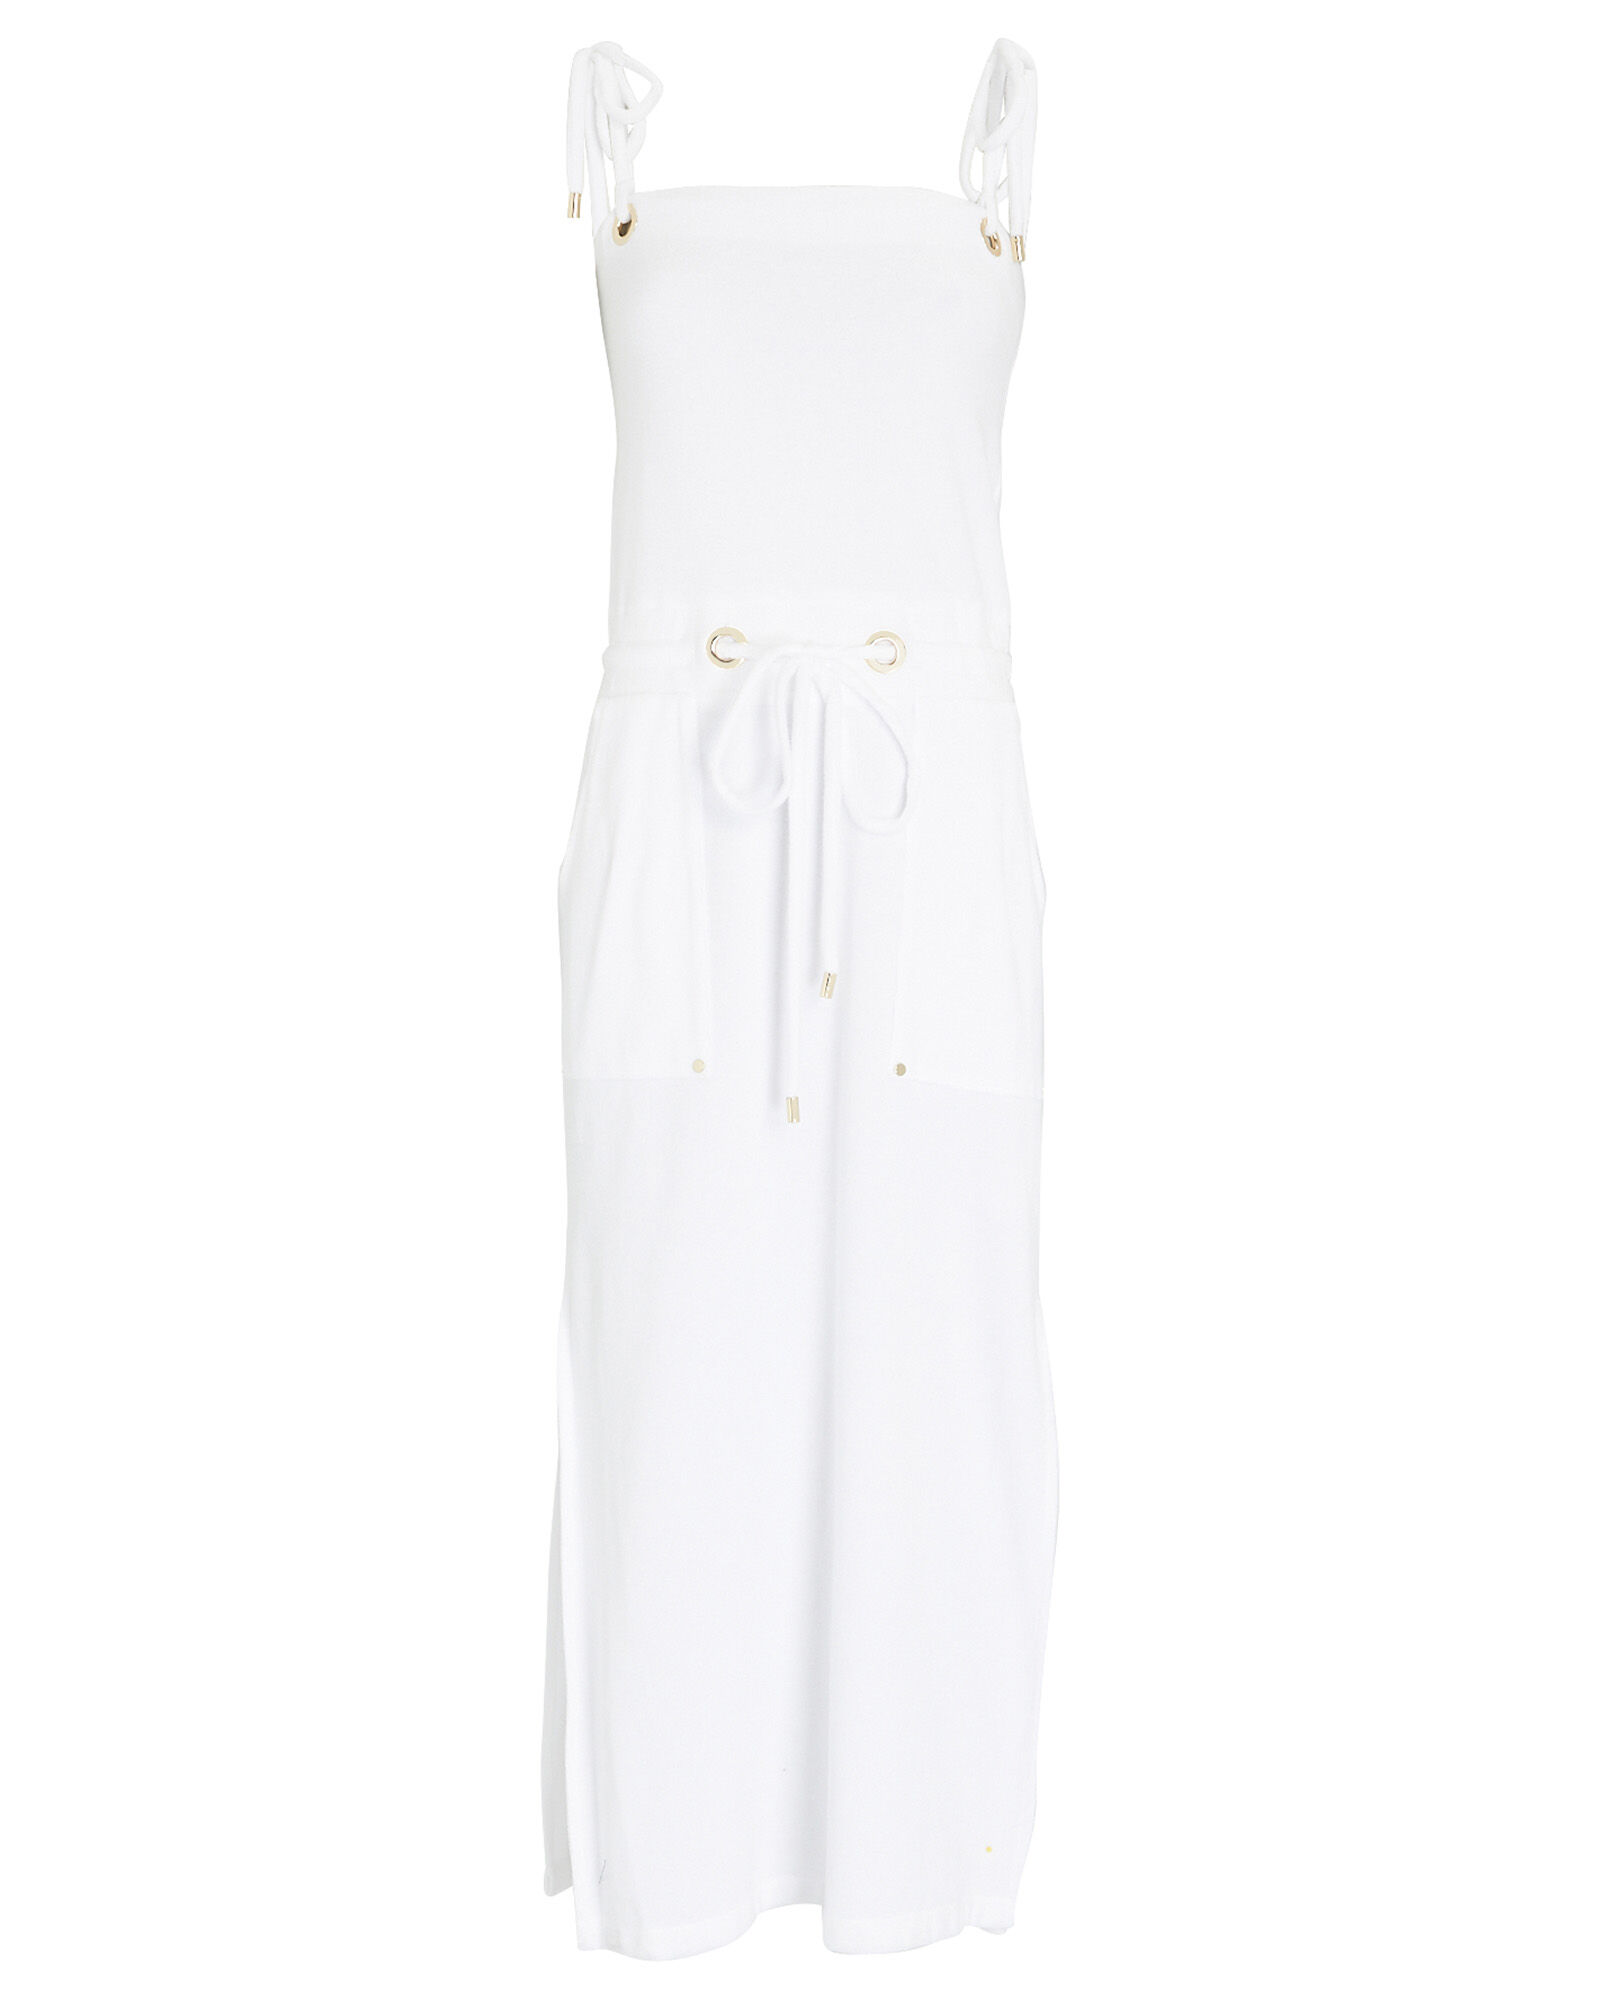 Karla Terry Cotton Cover-Up Dress, WHITE, hi-res